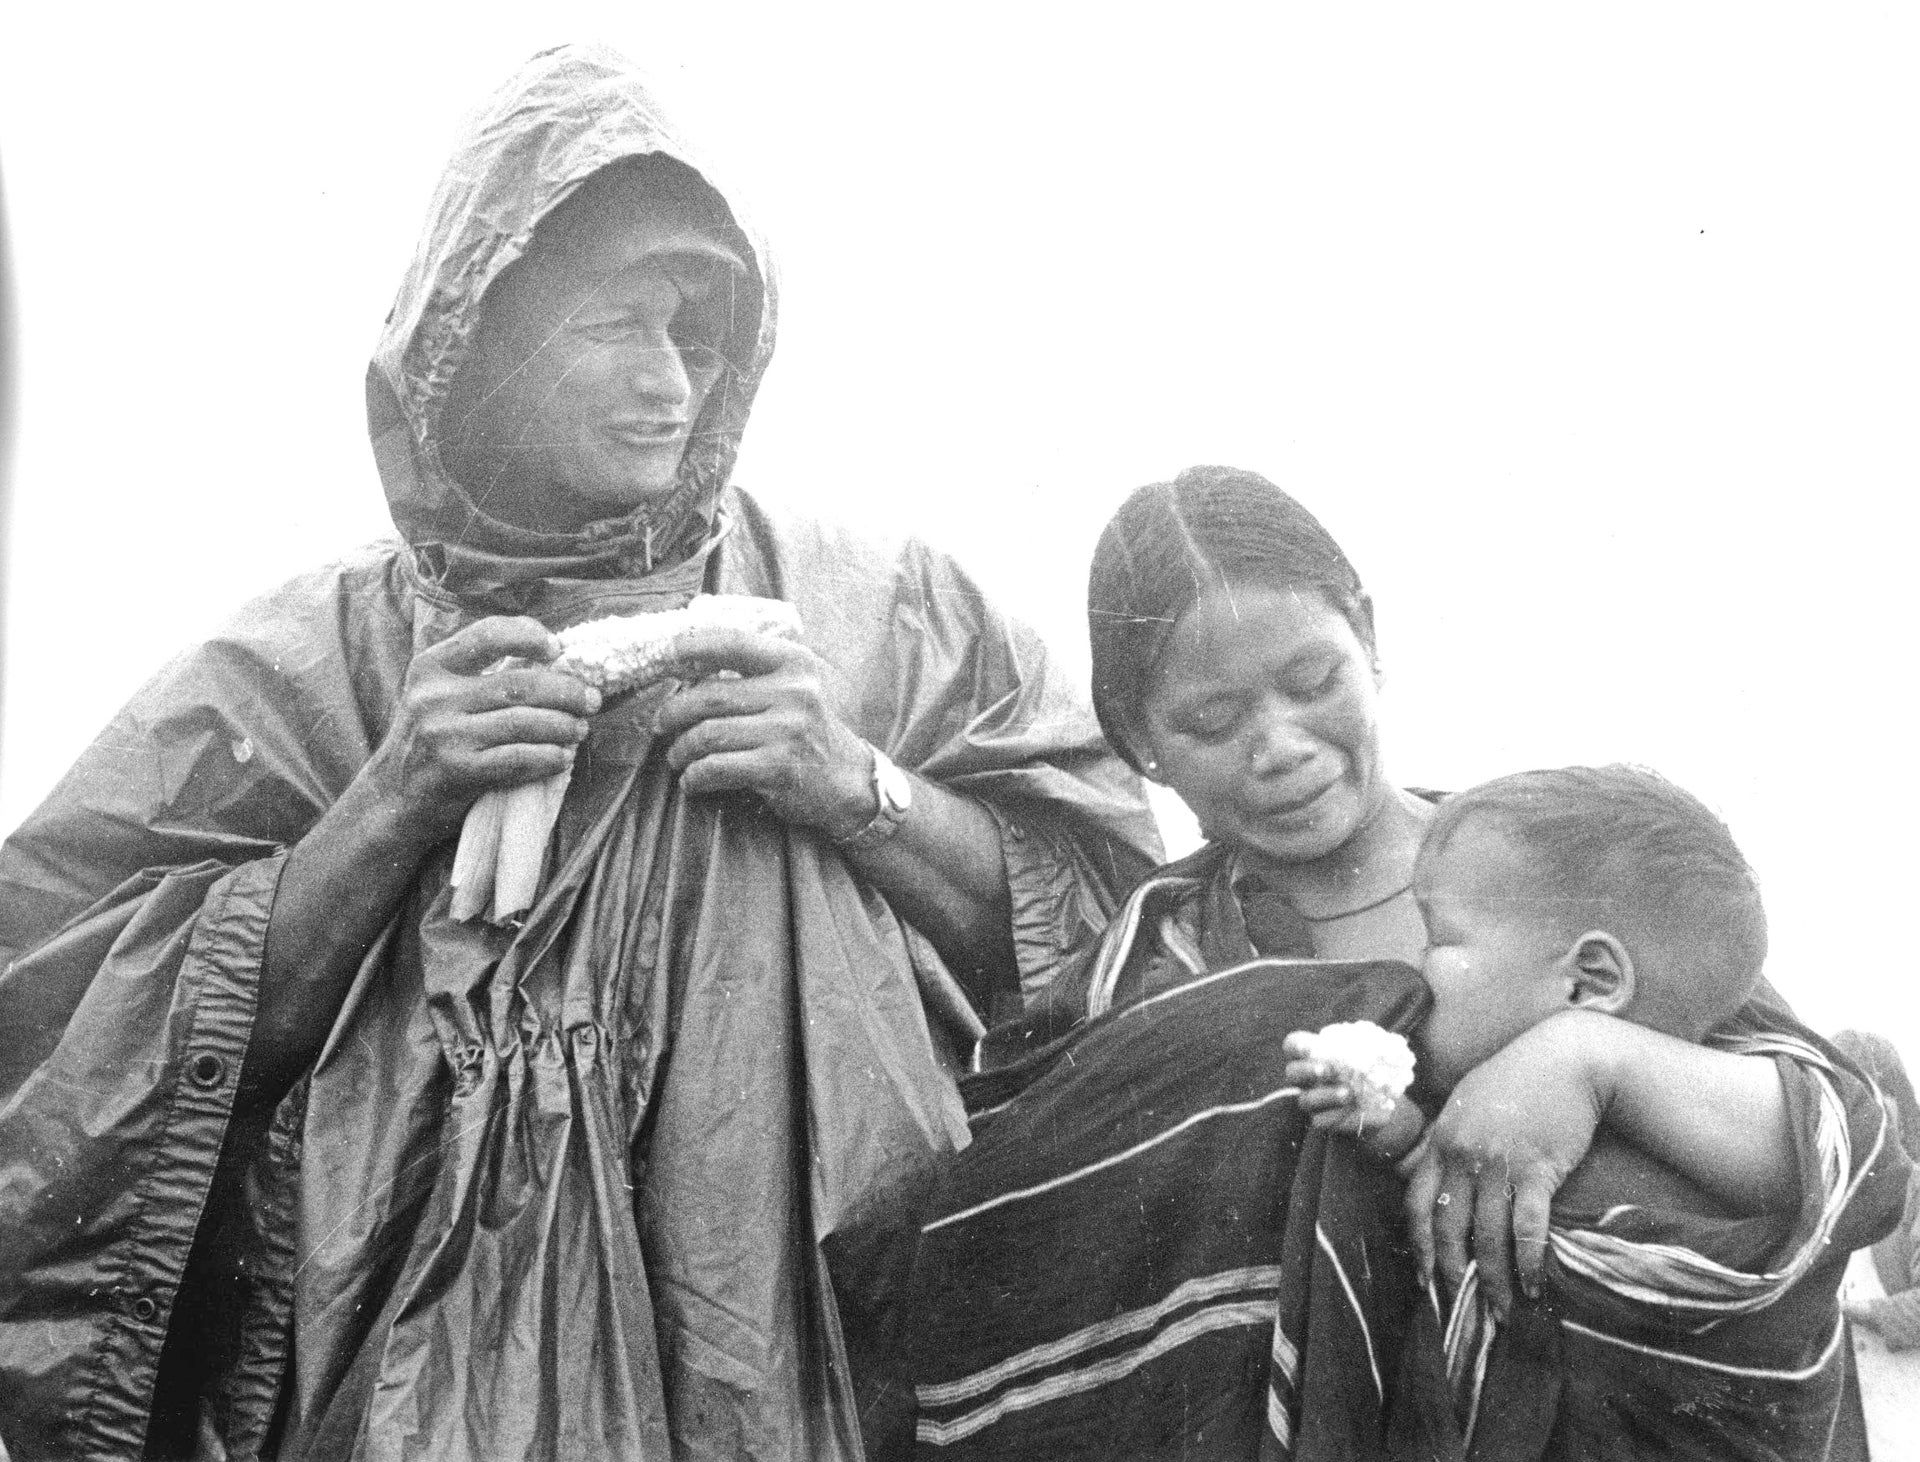 Moshe Dayan sharing some corn with a local family in Vietnam, August 1966.